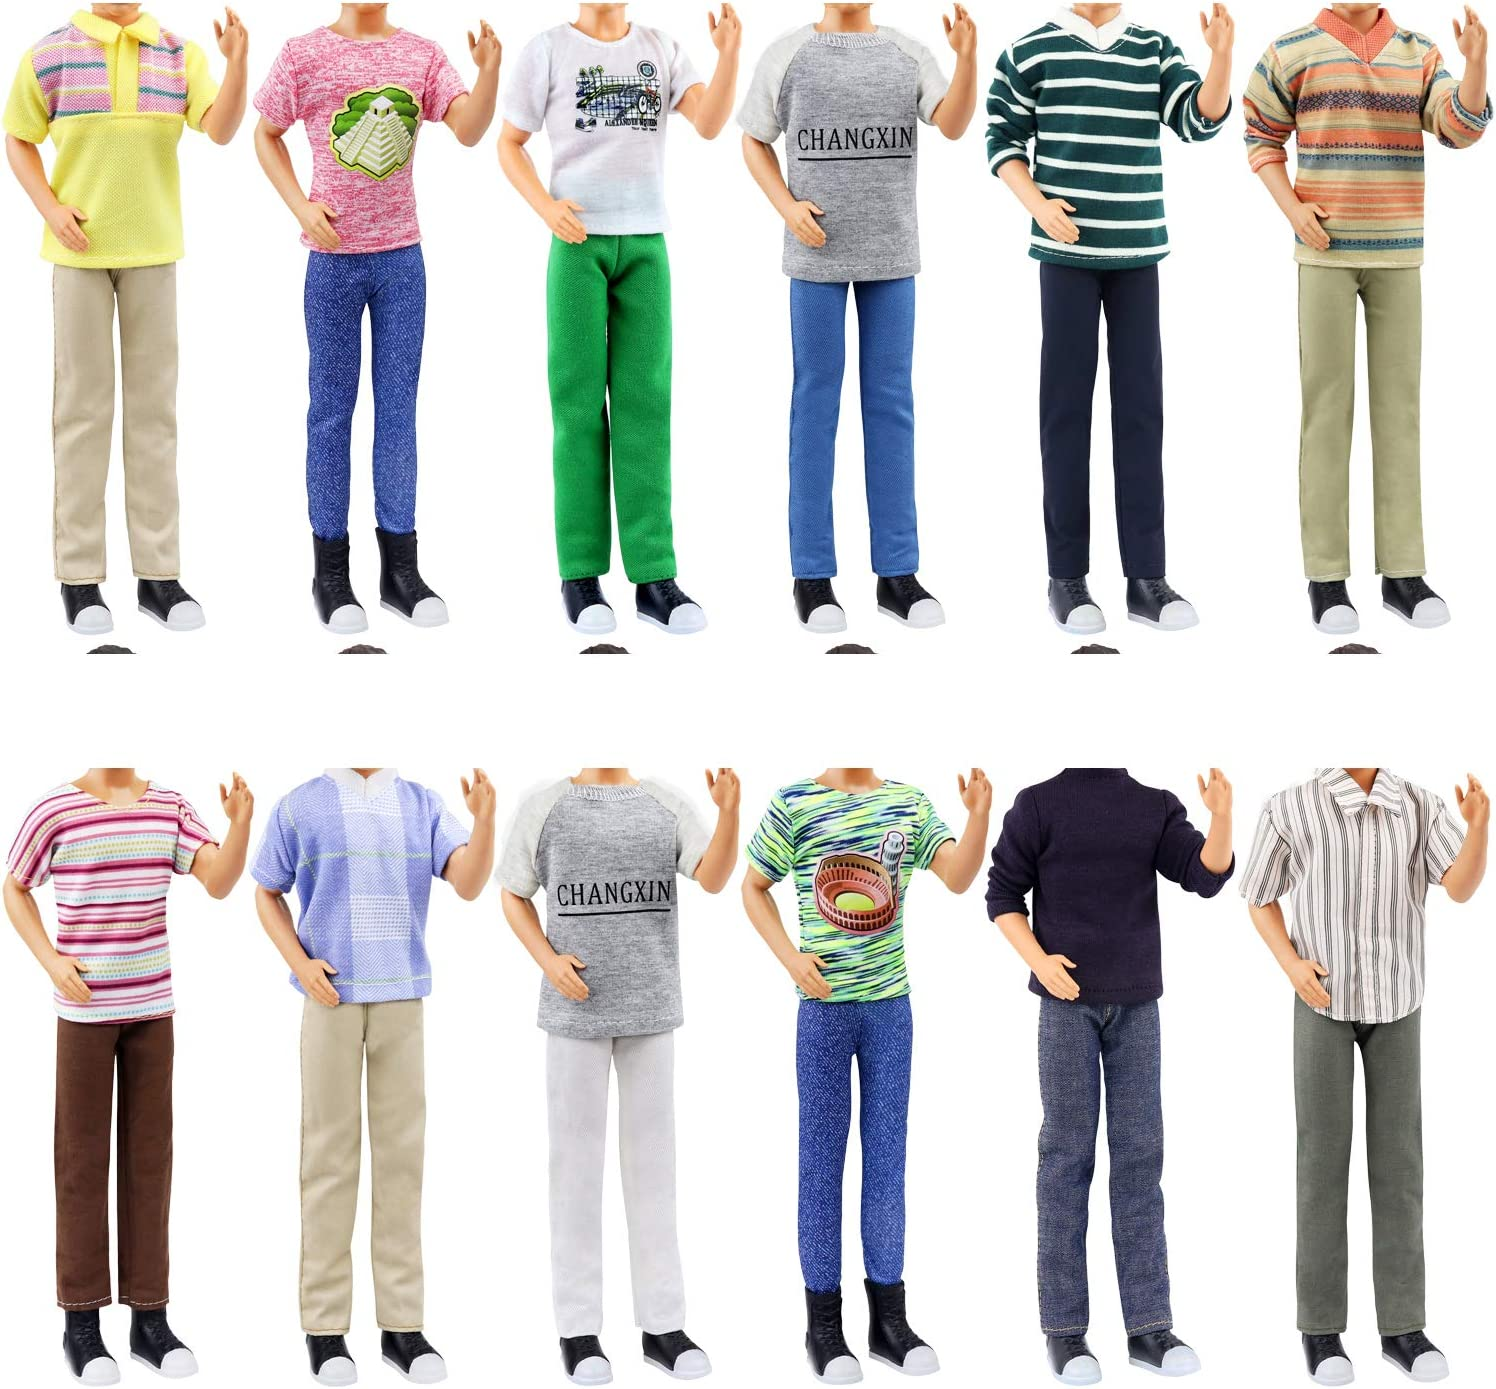 ZITA ELEMENT 12 Set of Max 79% OFF Quality Clothes Doll Rare Inch 11.5 Boy for